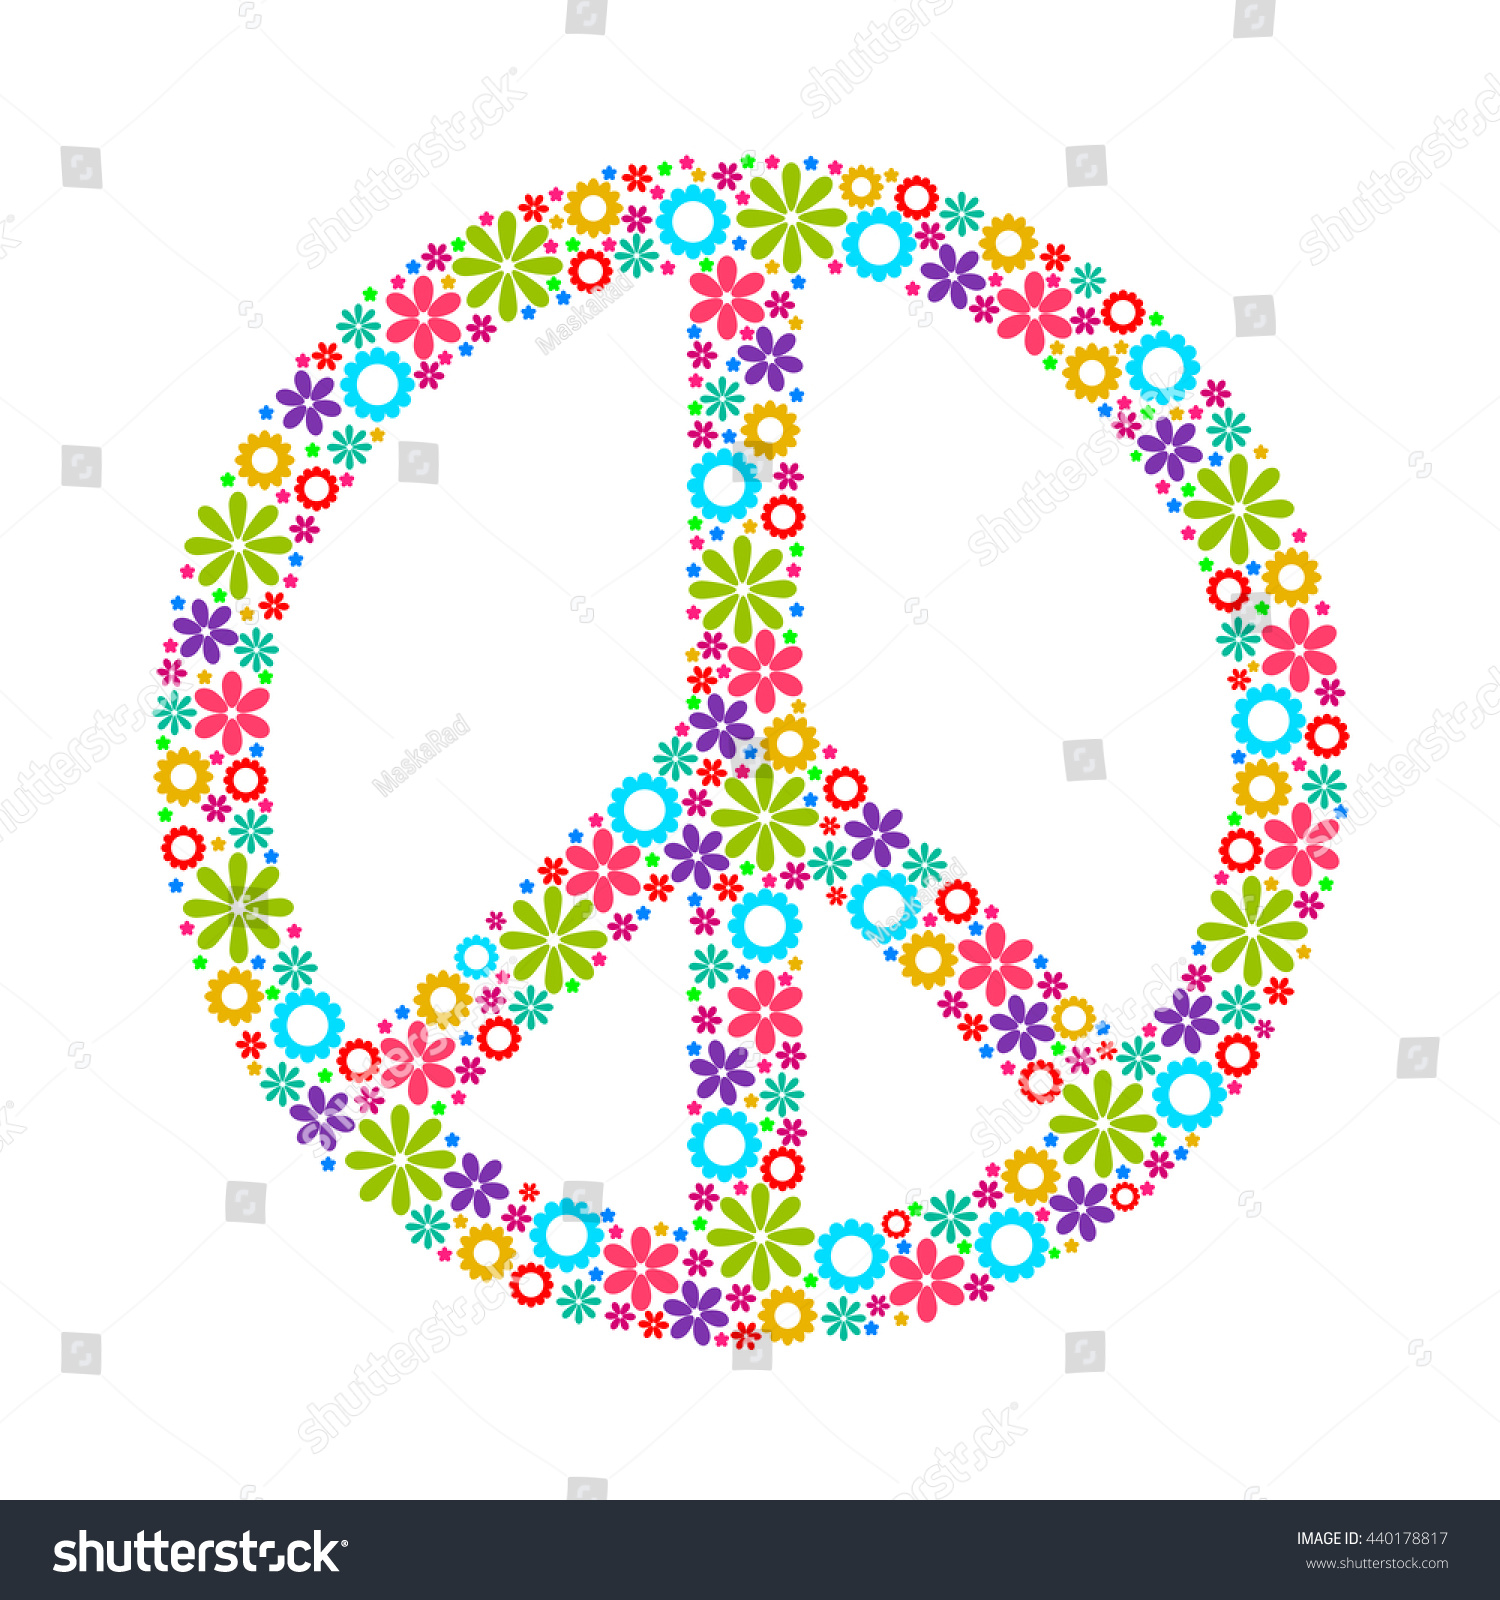 Symbol peace pacific made flowers logo stock vector 440178817 symbol of peace pacific made up of flowers logo vector image biocorpaavc Images